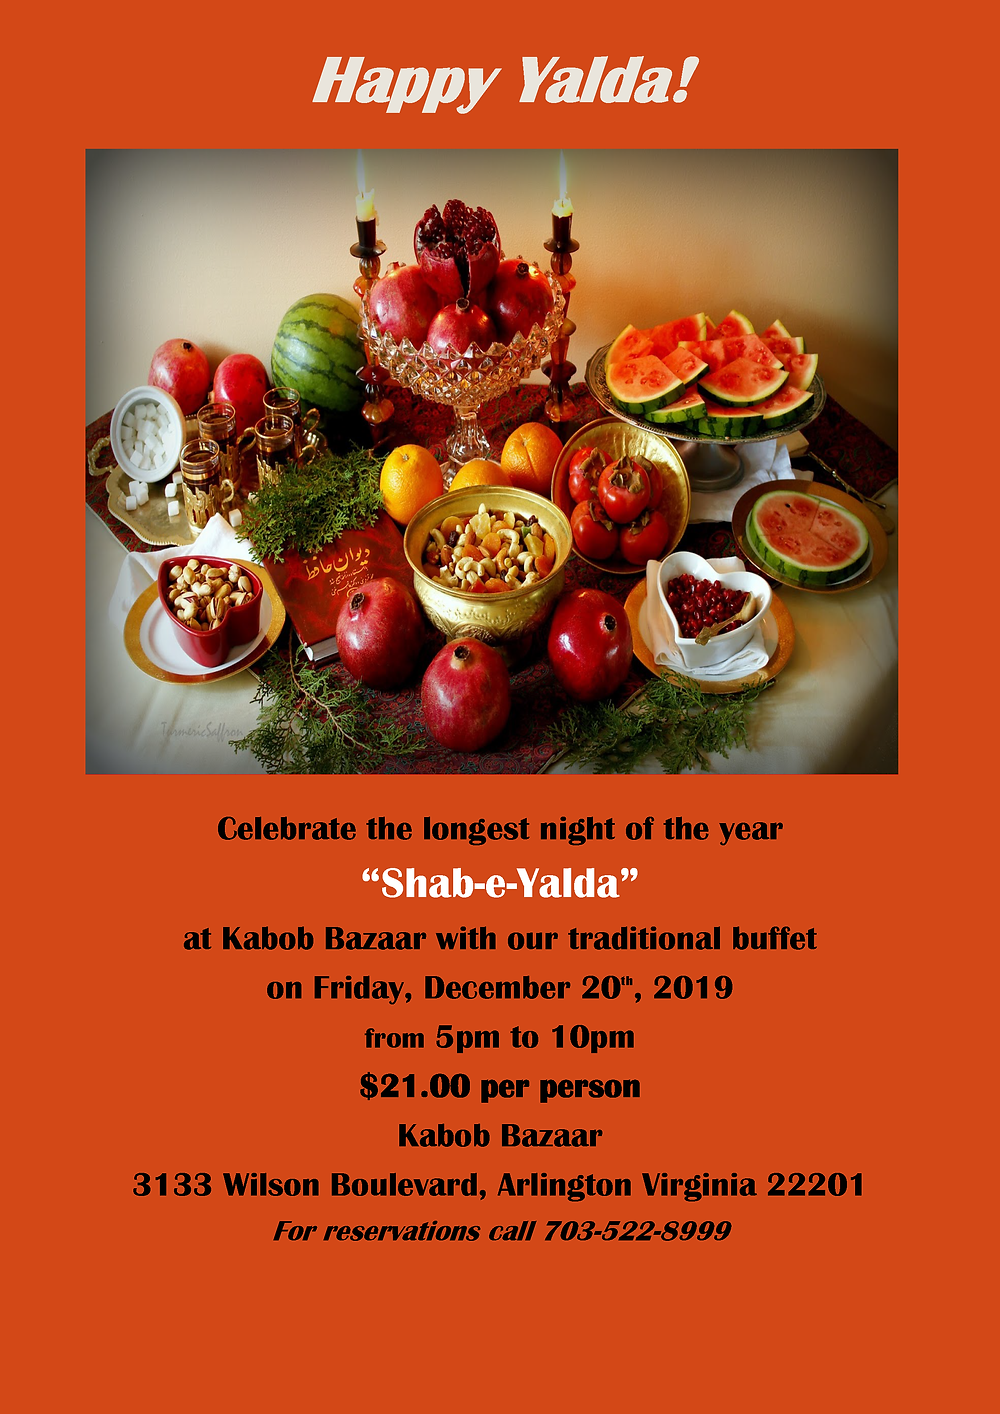 Shab-E-Yalda Flyer Kabob Bazaar Winter Solstice Celebration